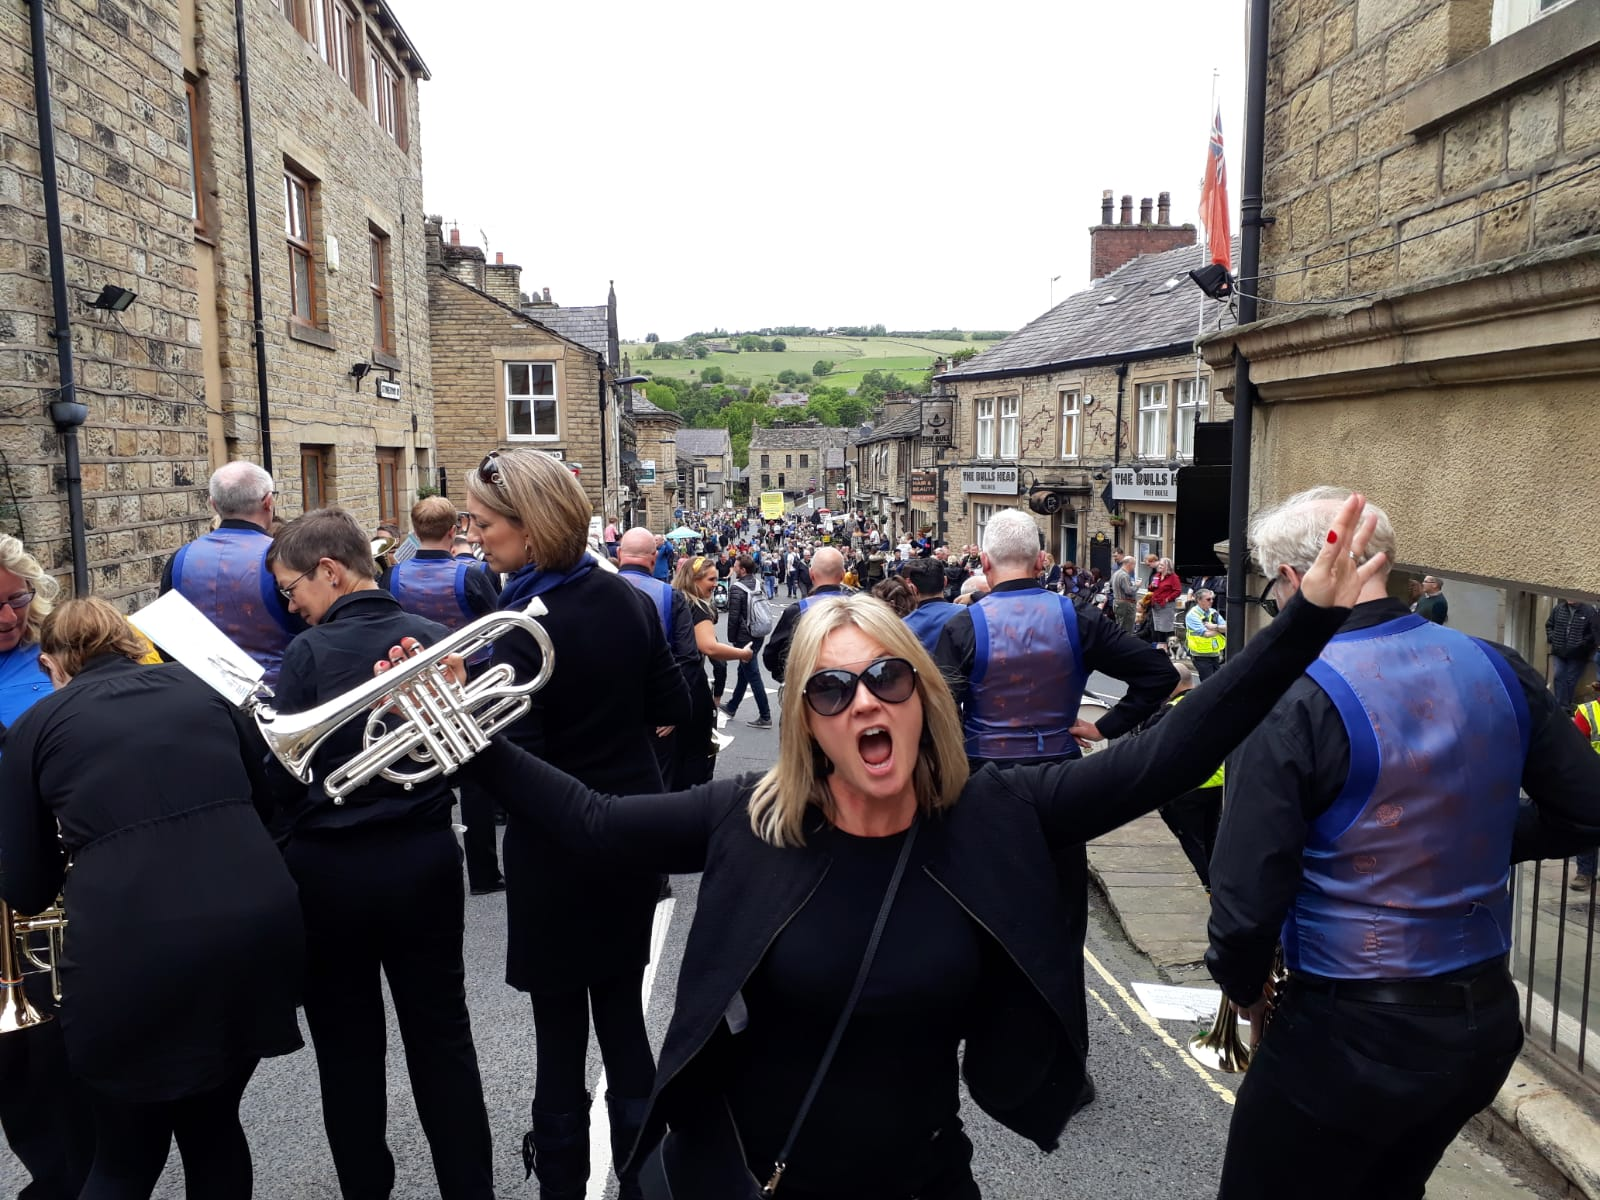 Cornet player excited